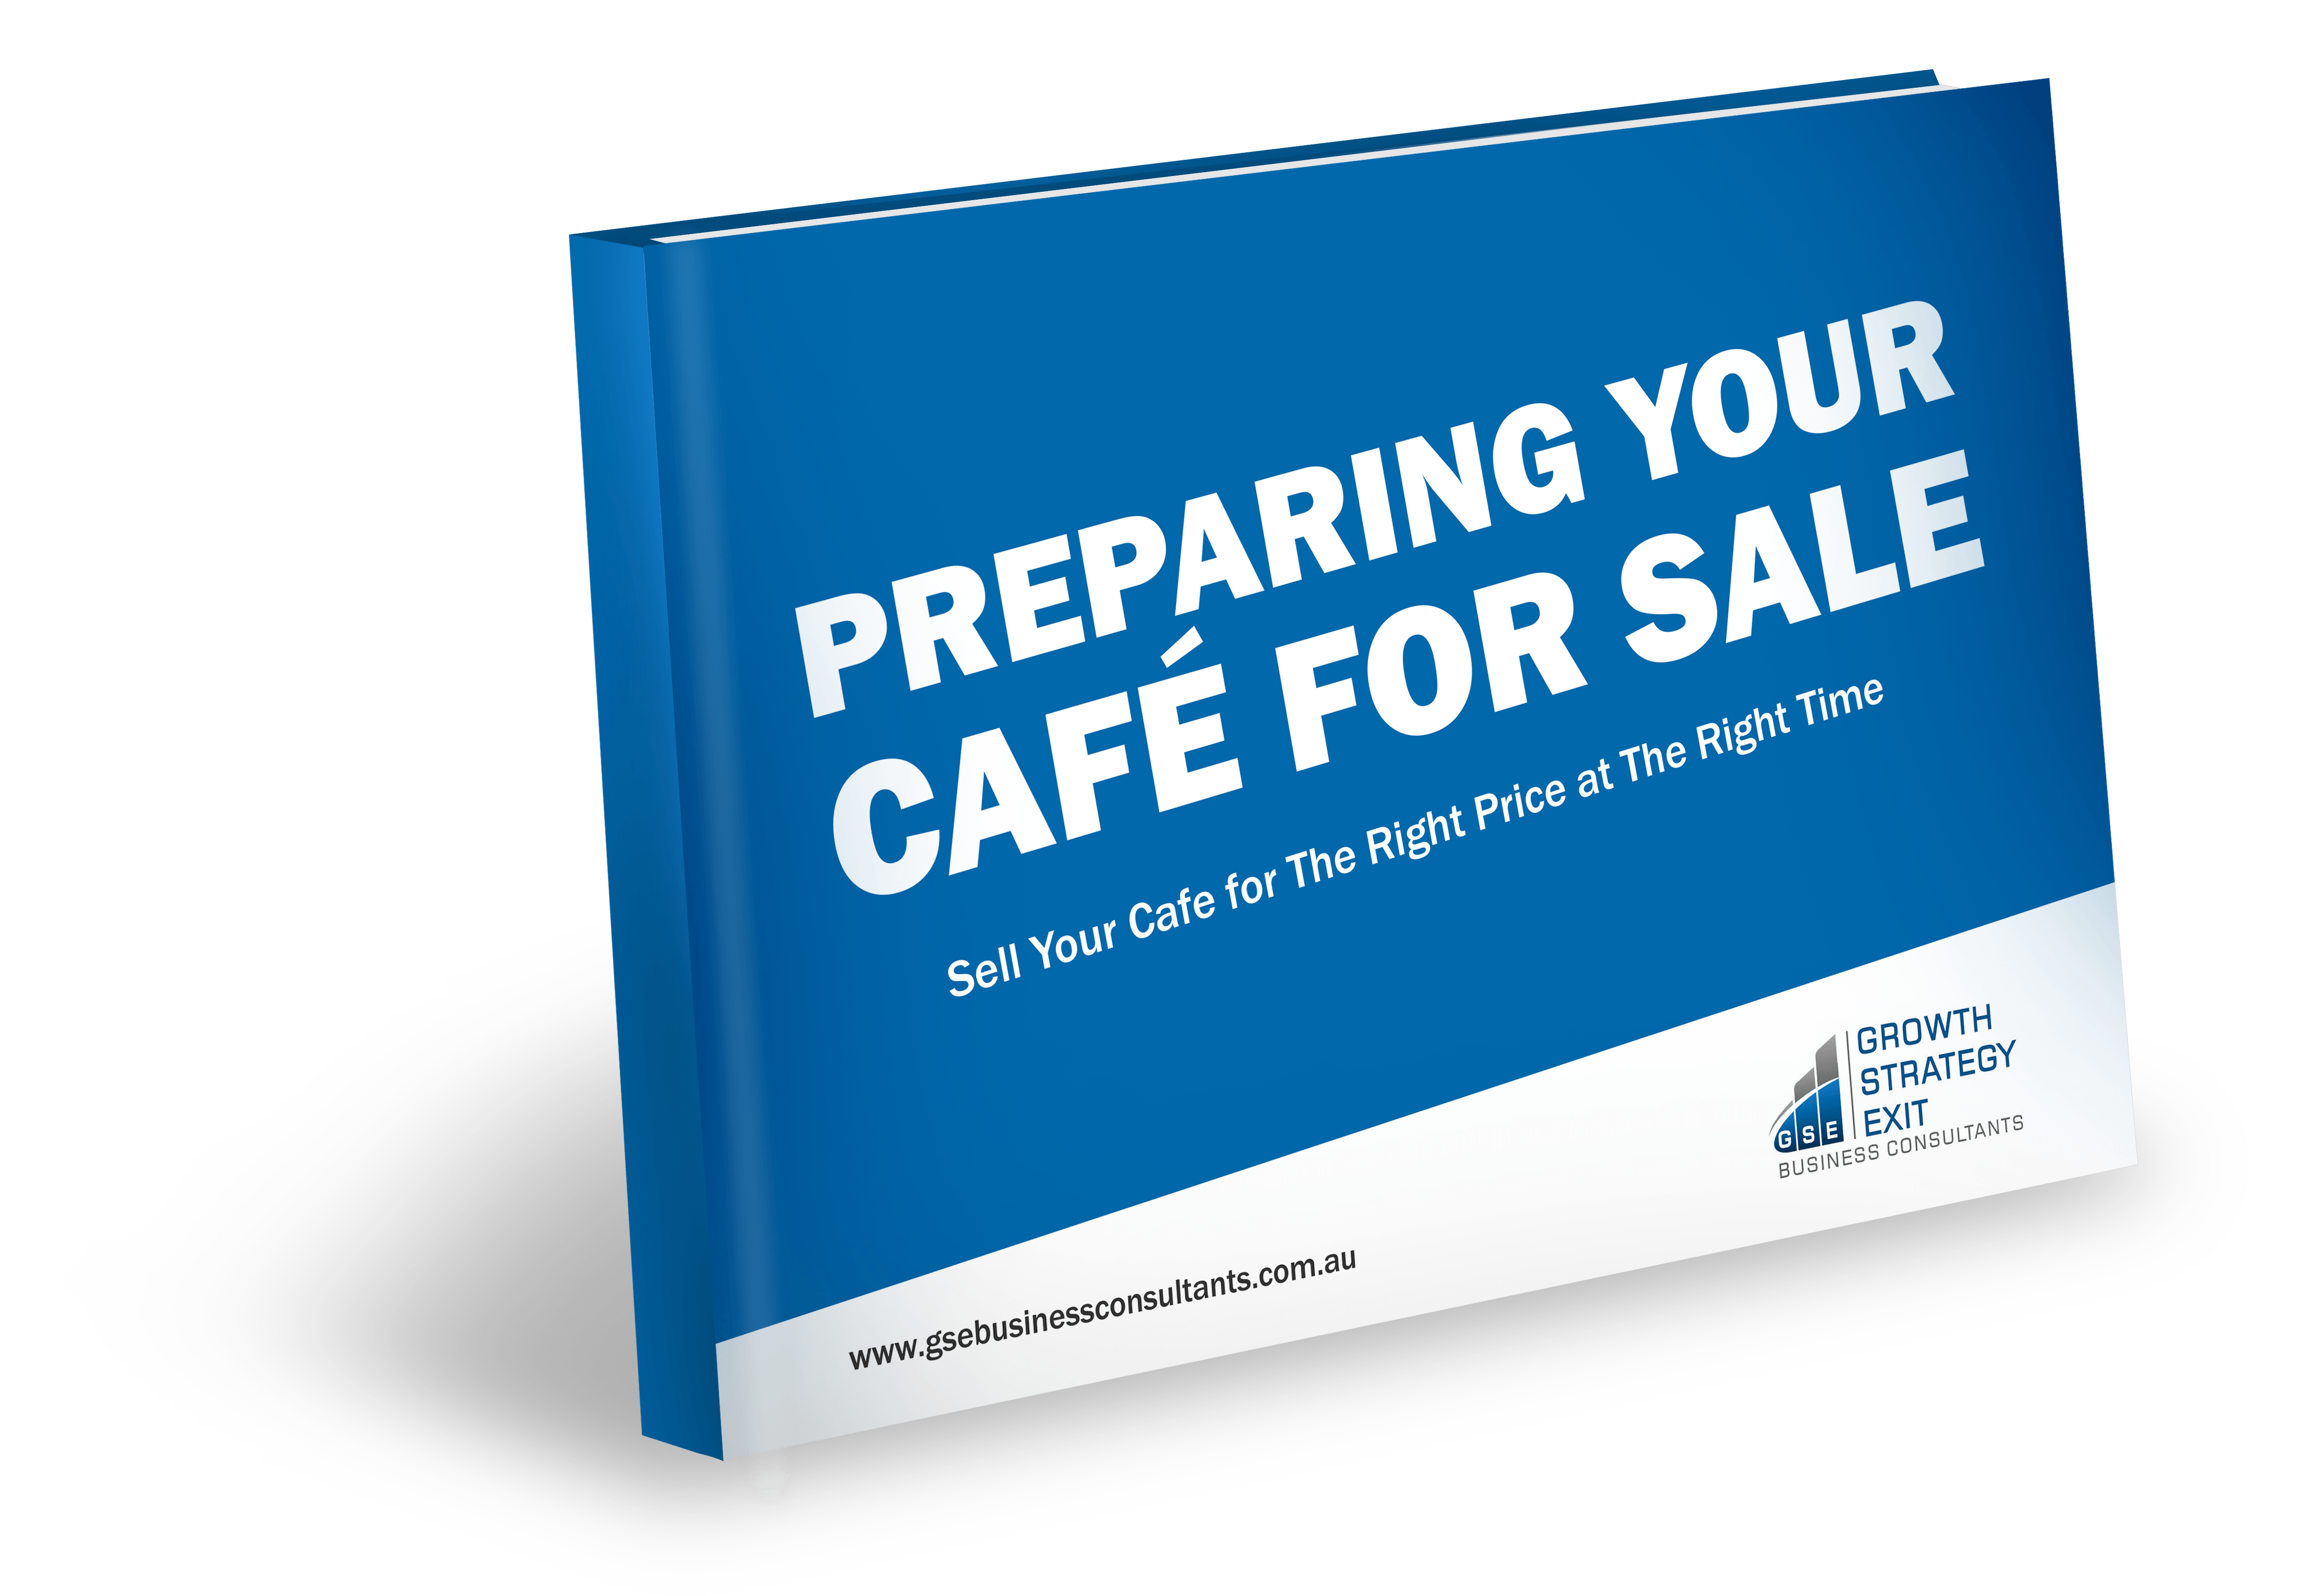 Things to remember when selling your business